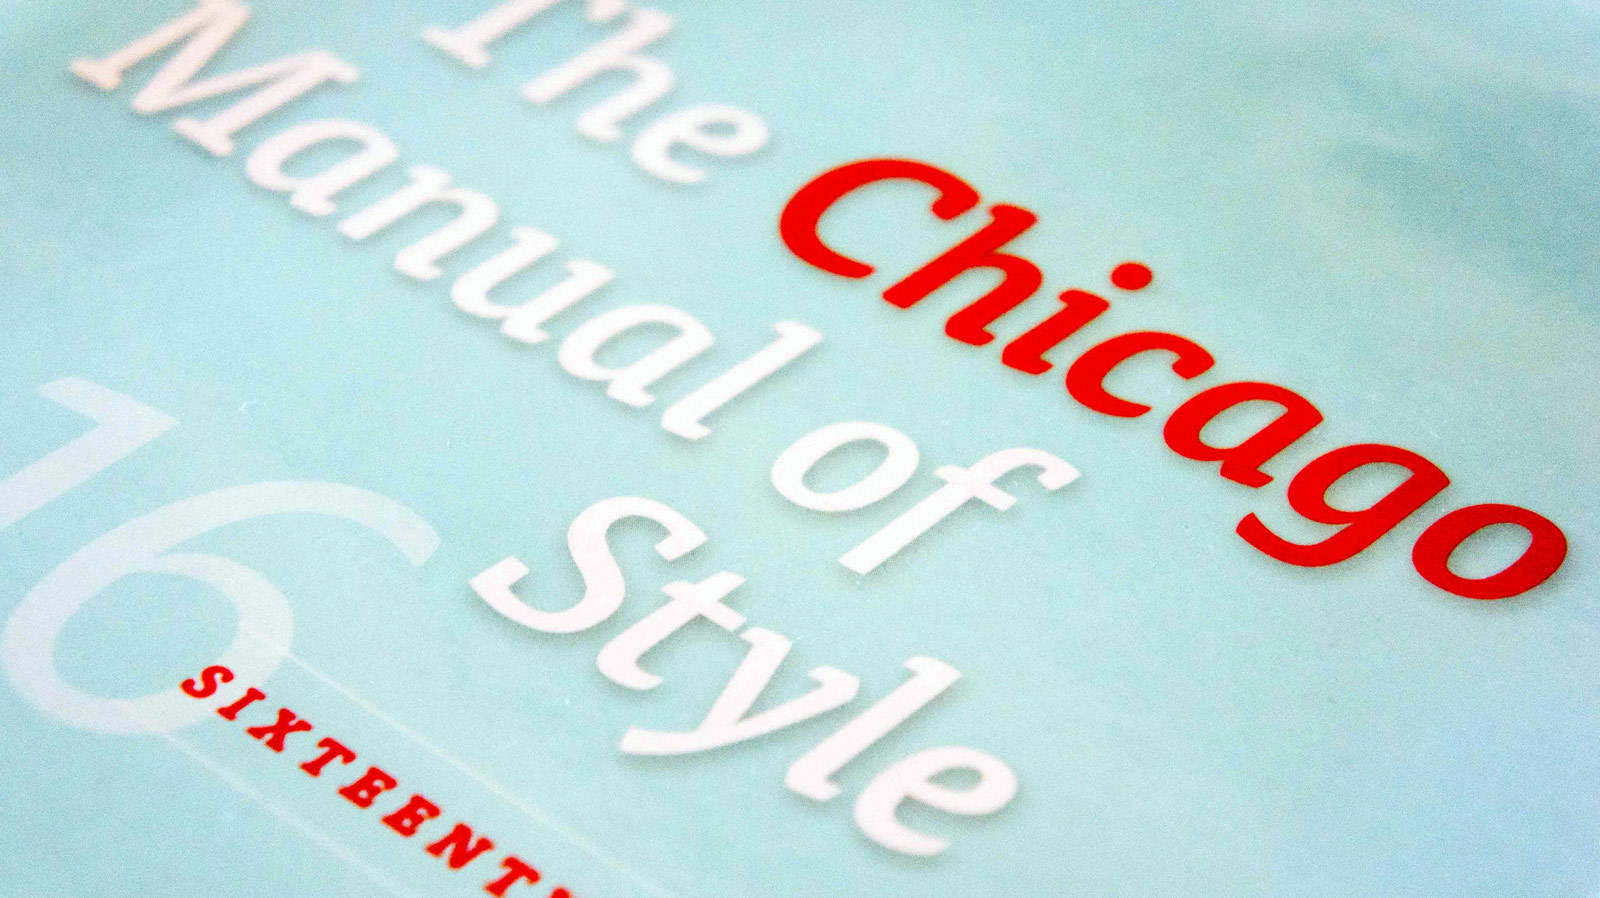 chicago manual of style torrent